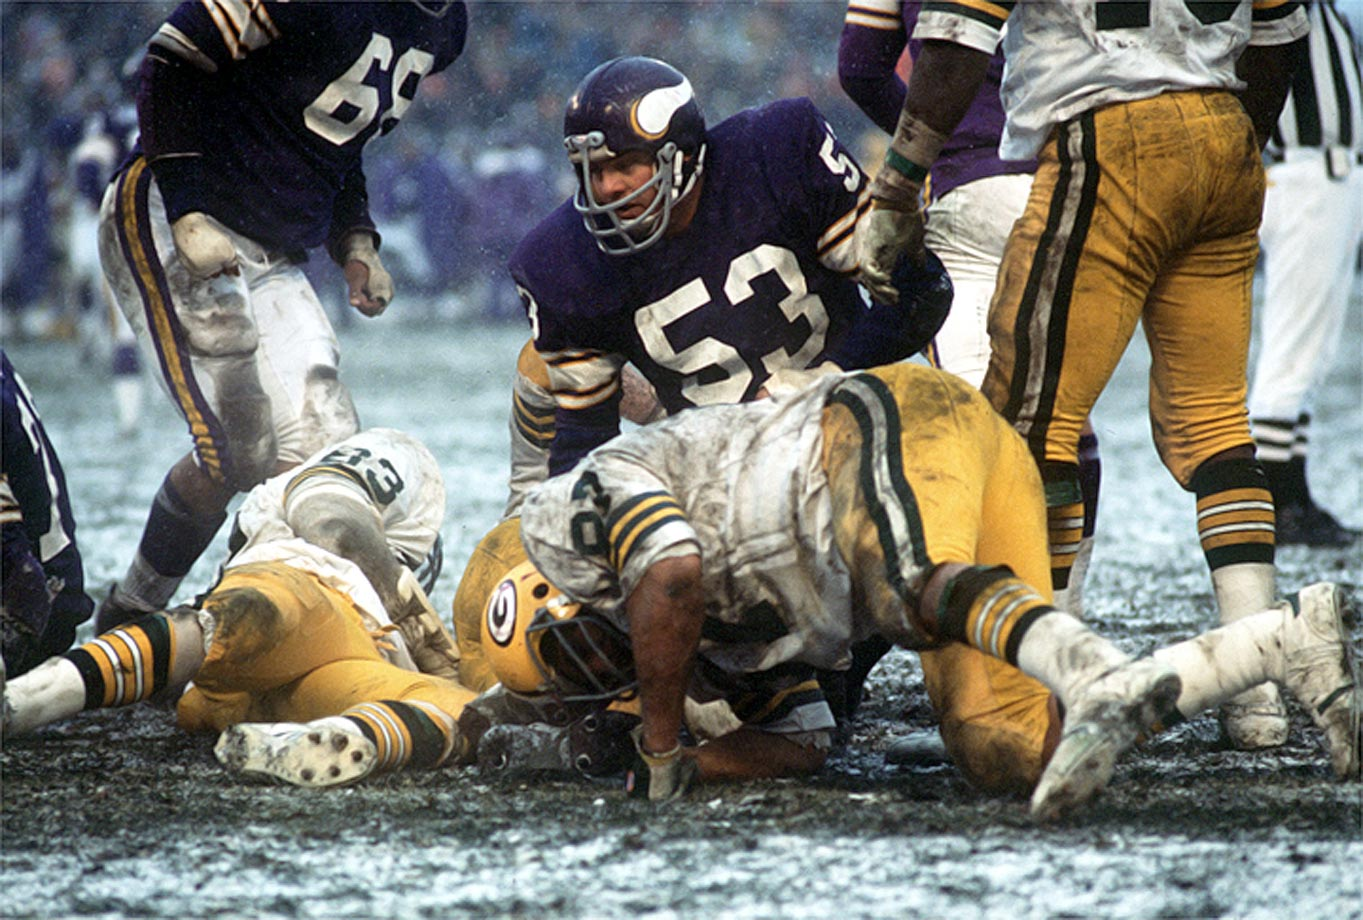 Tingelhoff over Harry Carson and Randy Gradishar? Yes, because he was the heart of the Vikings' offense through the rough expansion years and on the teams that went to four Super Bowls. He never missed a game throughout his 17-year career—that's 240 regular season and 19 playoff games, playing at an All-Pro level all the way through.